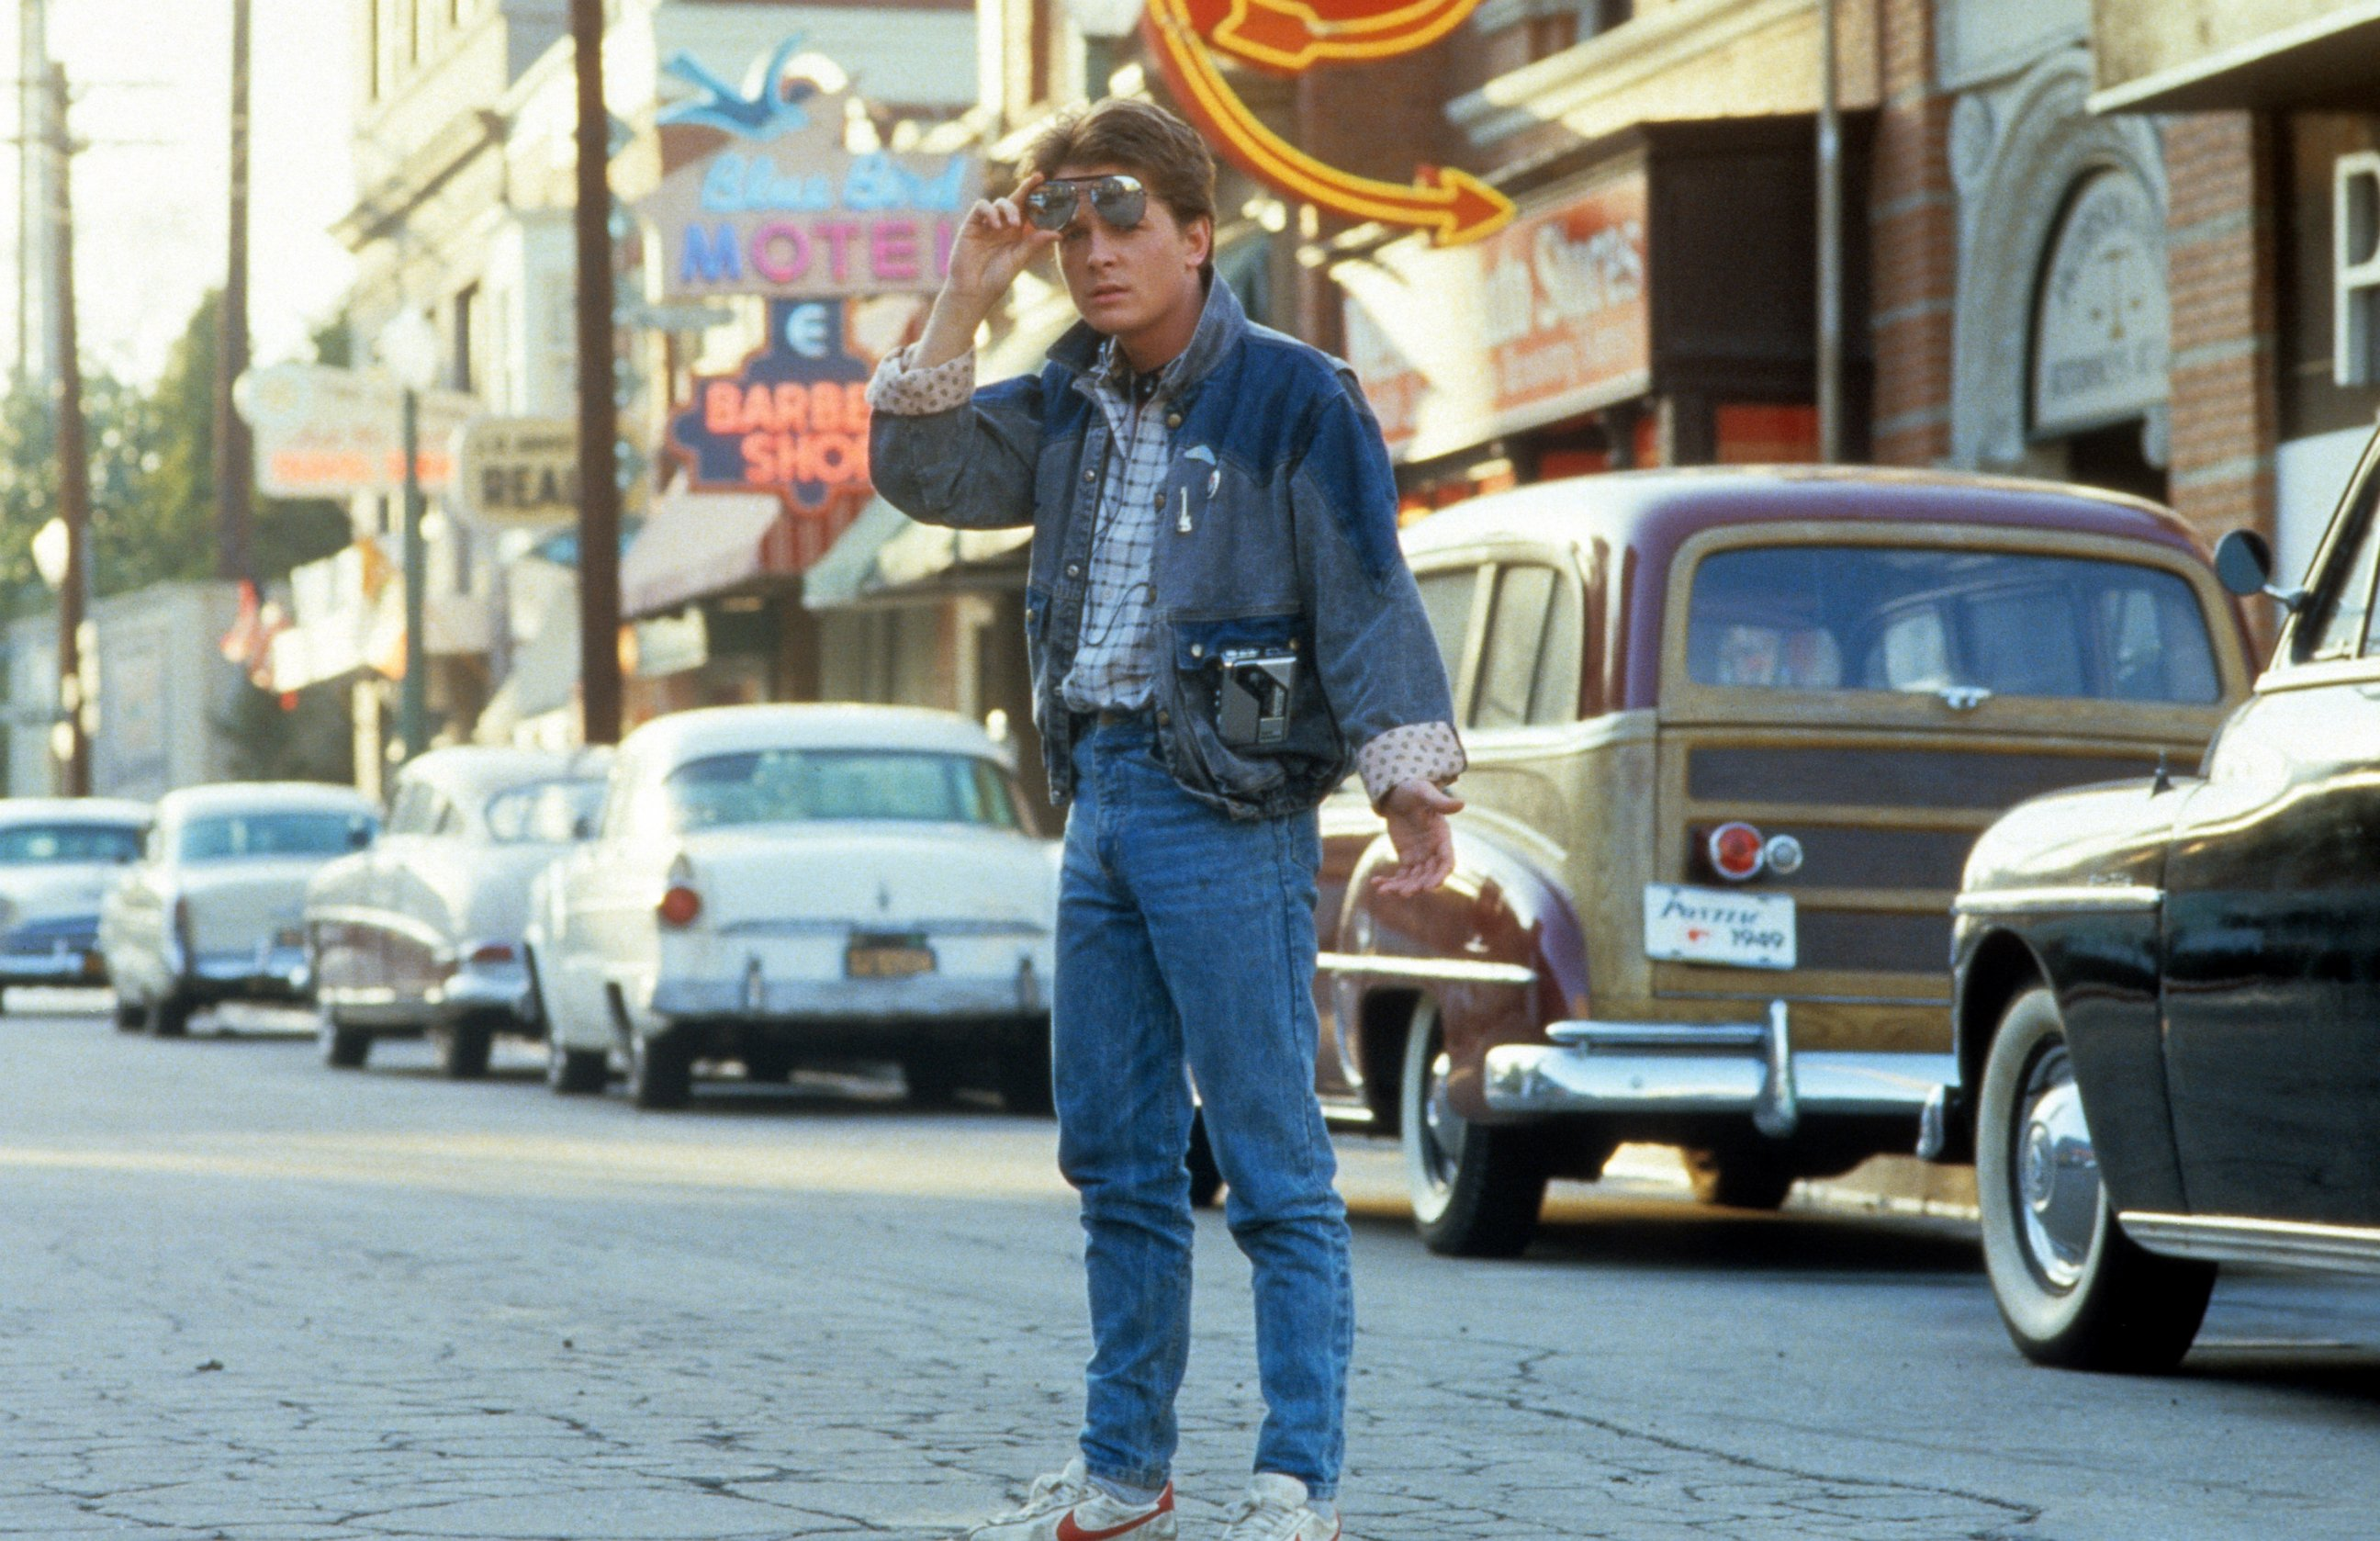 Michael J. Fox came back from the future